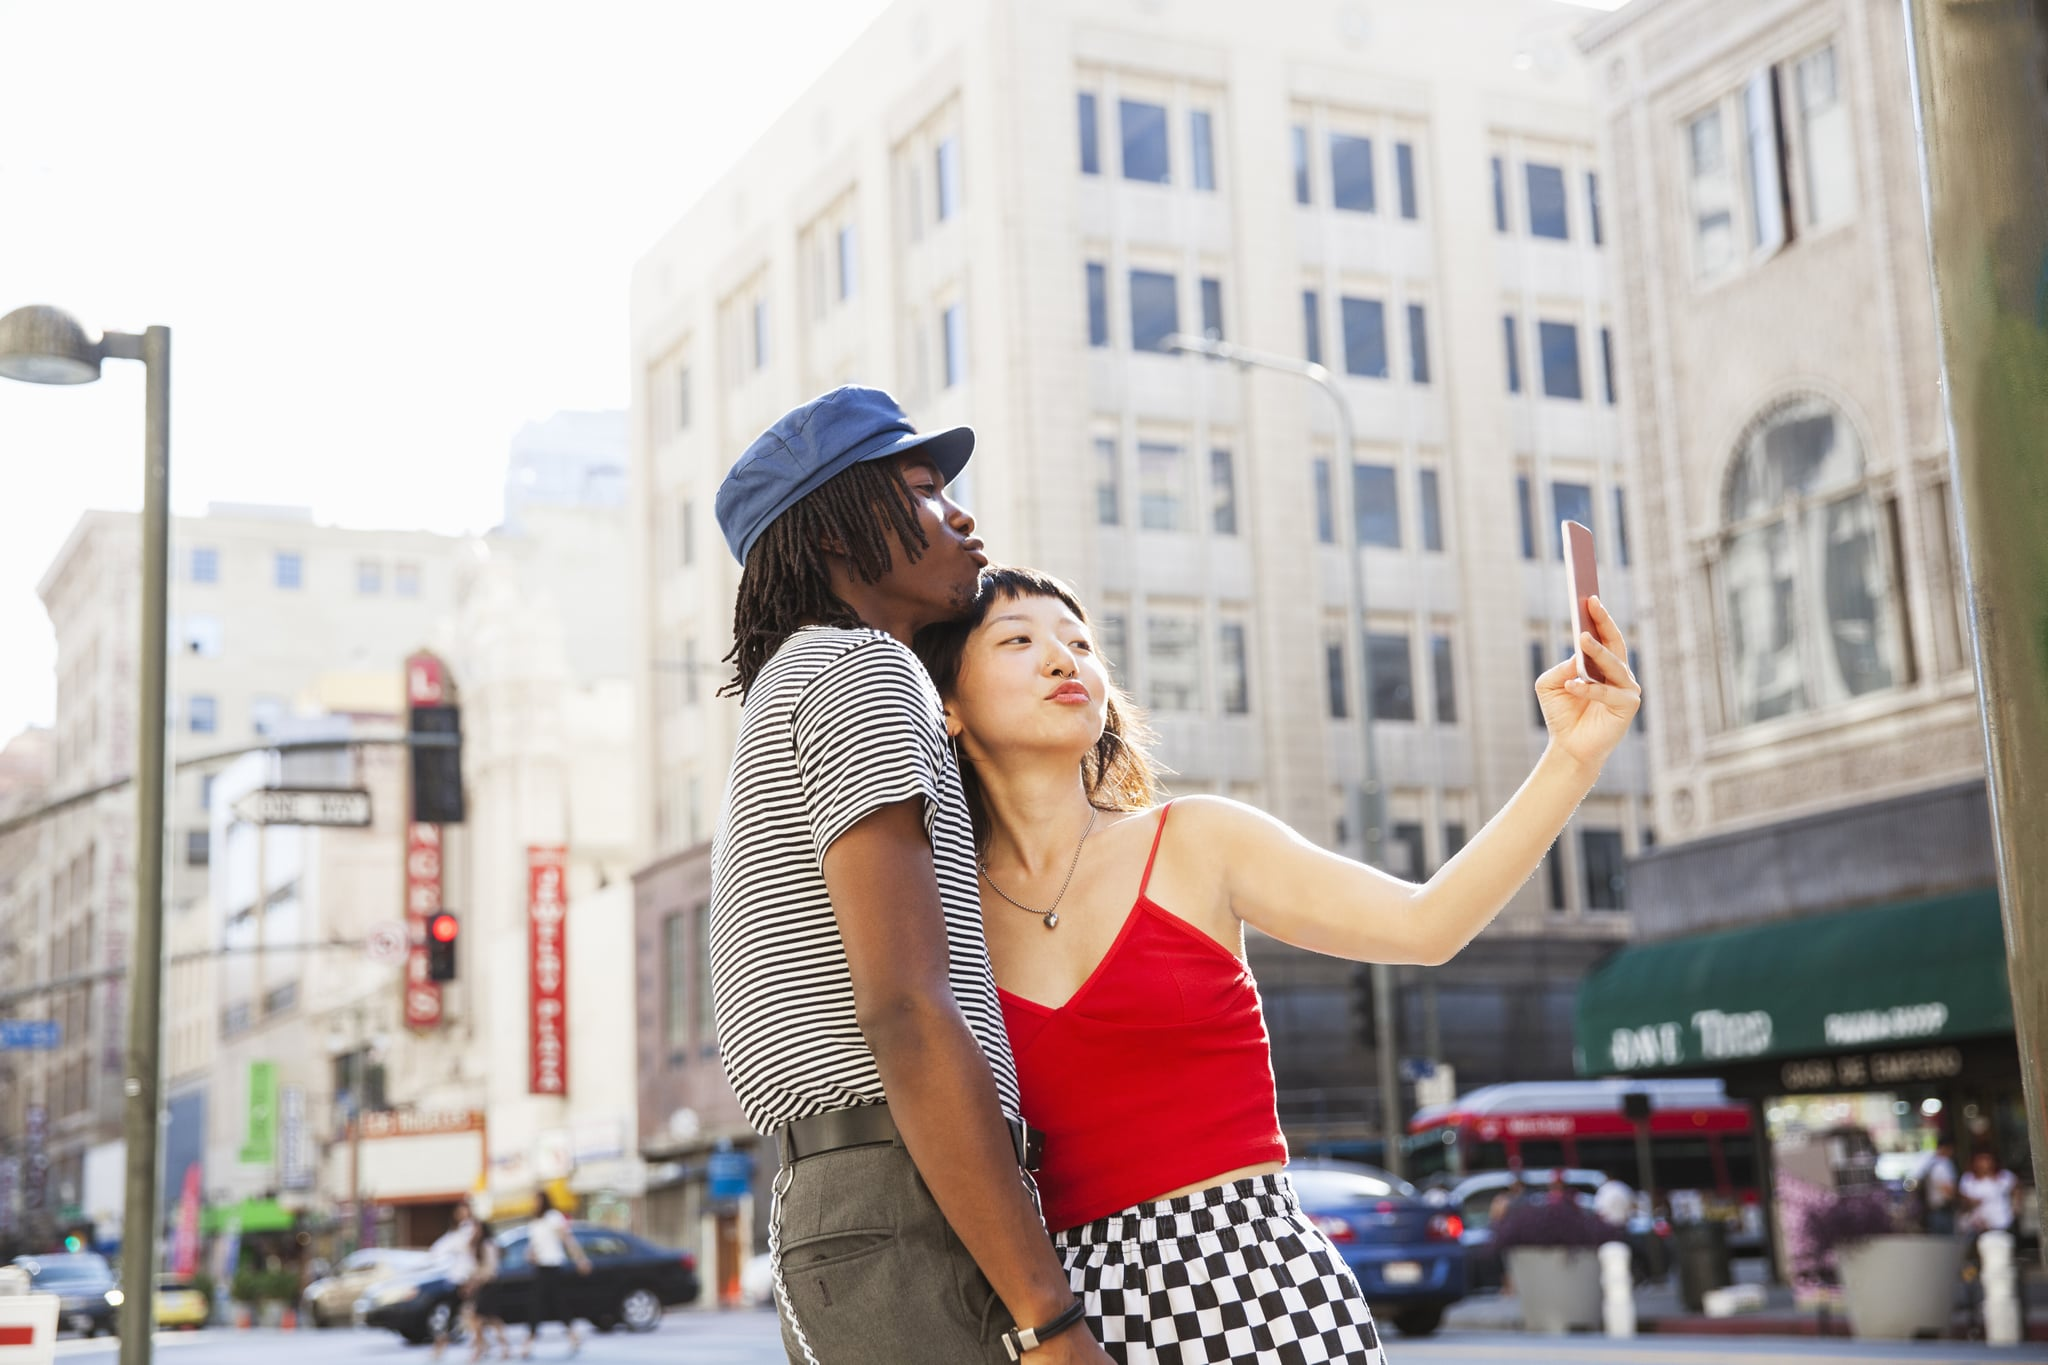 A young couple taking a selfie on a city street with a mobile device